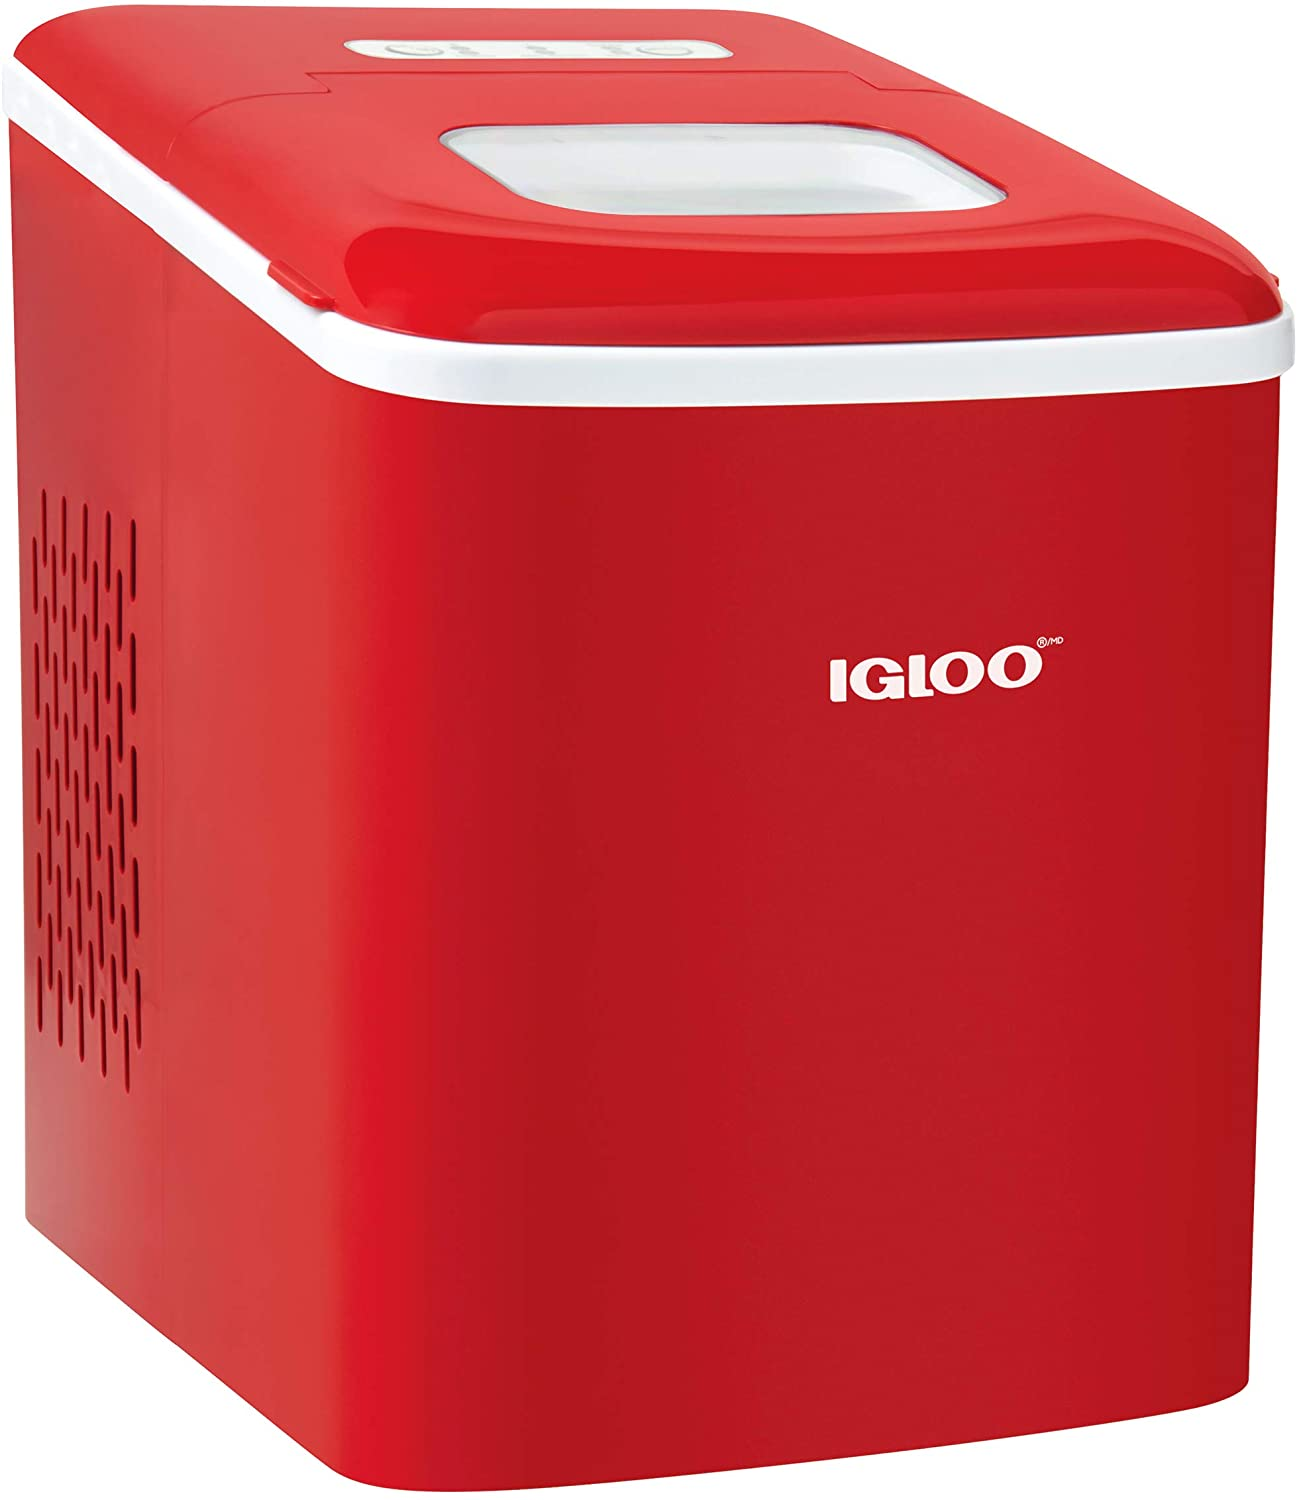 Igloo ICEBNH26RD Automatic Self-Cleaning Portable Electric Countertop Ice Maker Machine, 26 Pounds in 24 Hours, 9 Cubes Ready in 7 minutes, With Scoop and Basket